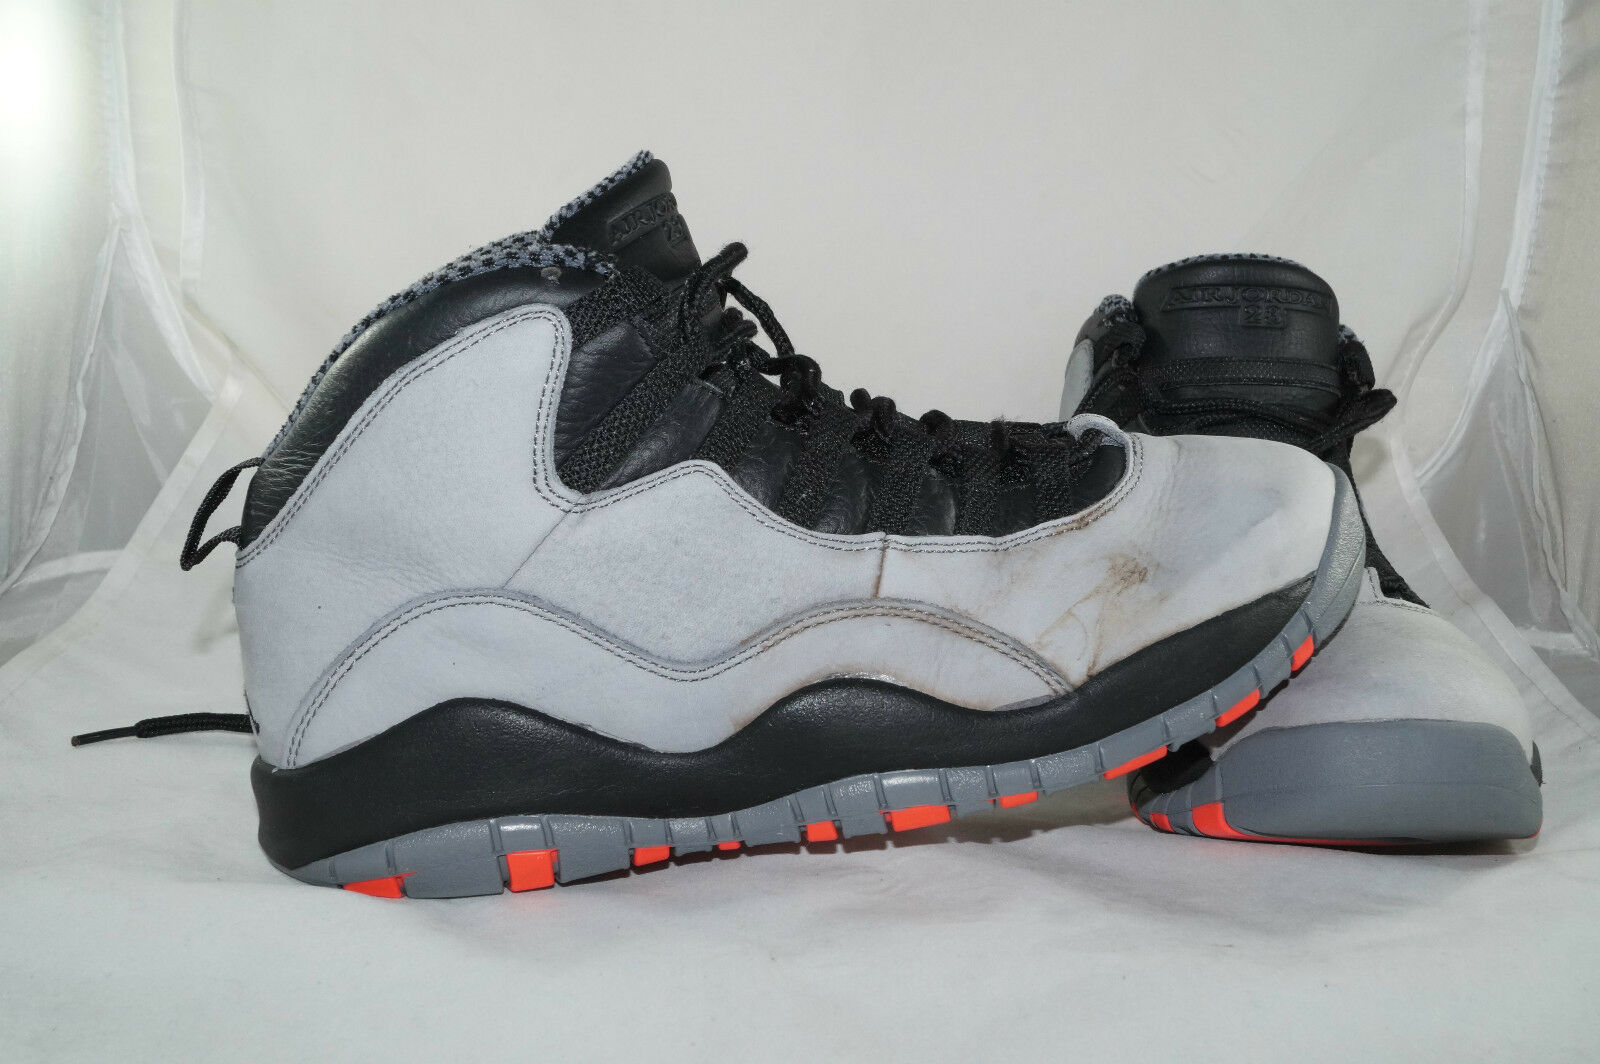 Nike Air Jordan Retro 10 X Cool Grey Gr: 42,5 Grau Basketball High Tops